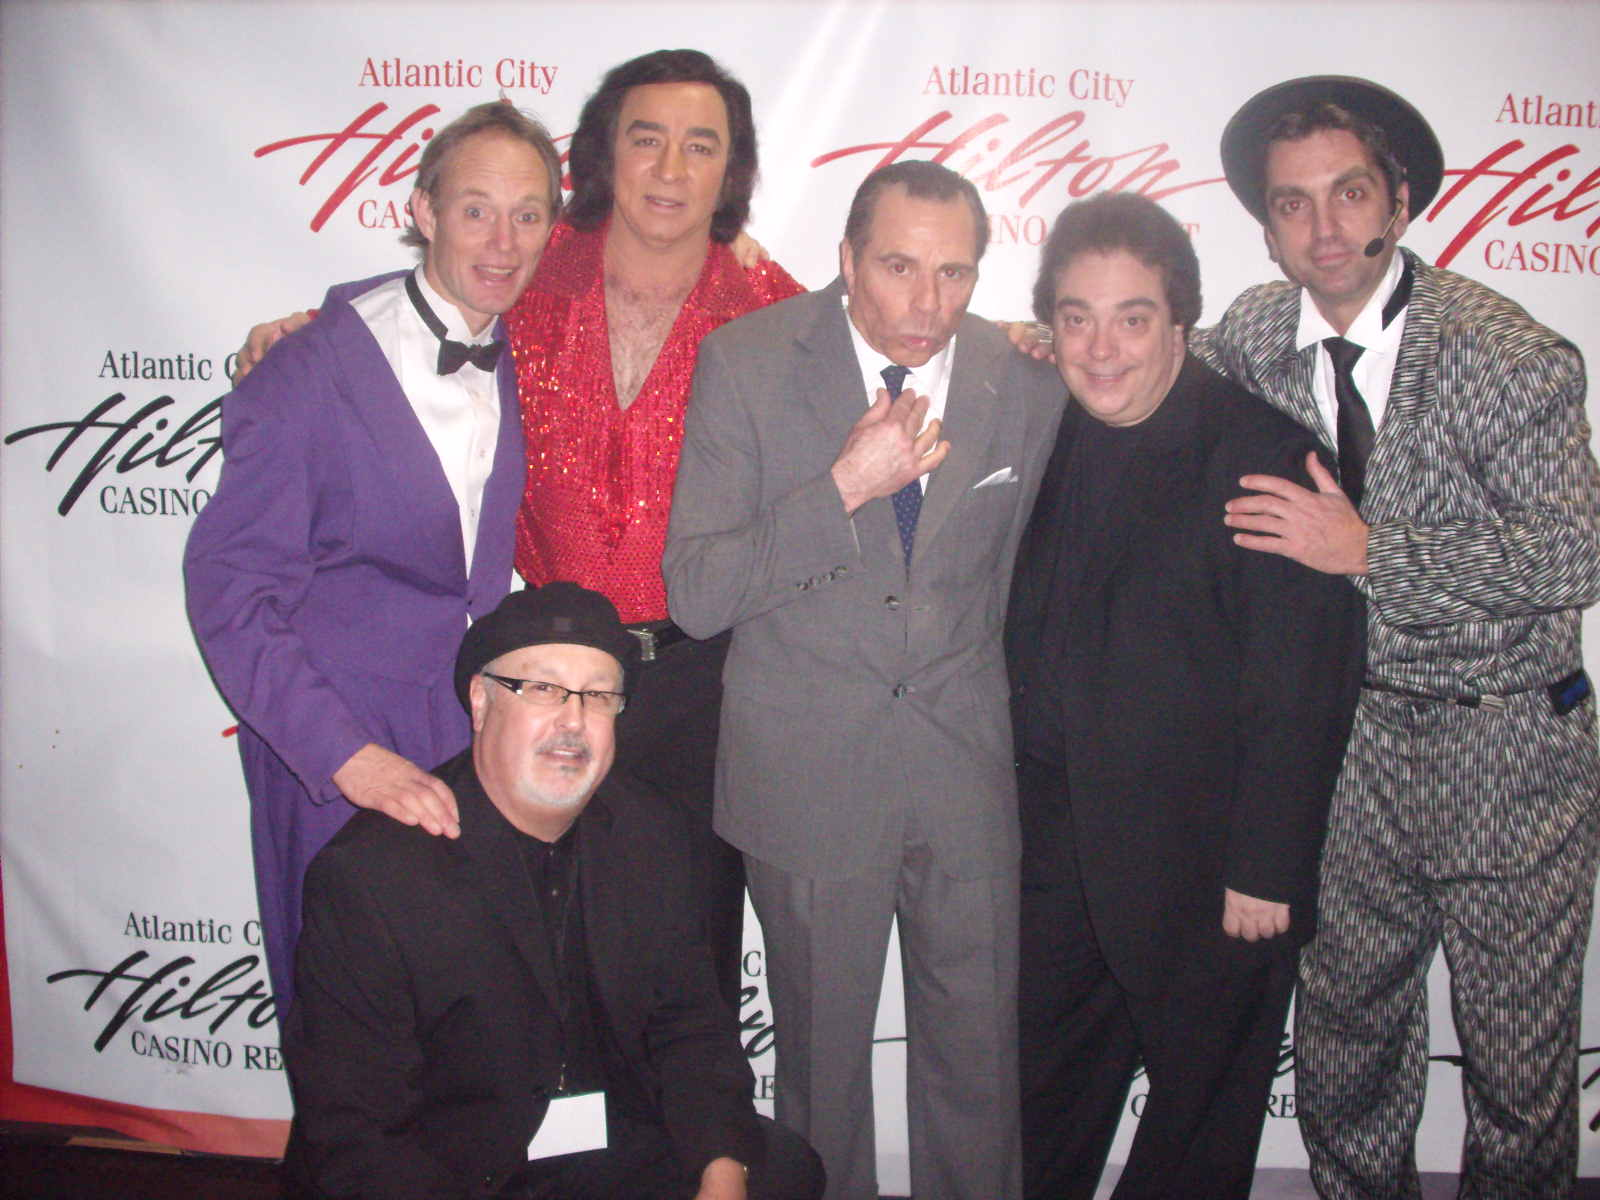 Cast of A Really Big Shew at the Hilton Casino Resort in Atlantic City: Tom Sadge; Glen Singer; Jeff DeHart; Hendrick; Pete Michaels along with Gene Siler, Siler Associates (producer). Photo: Marion Sadge, webmaster TomSadge.com